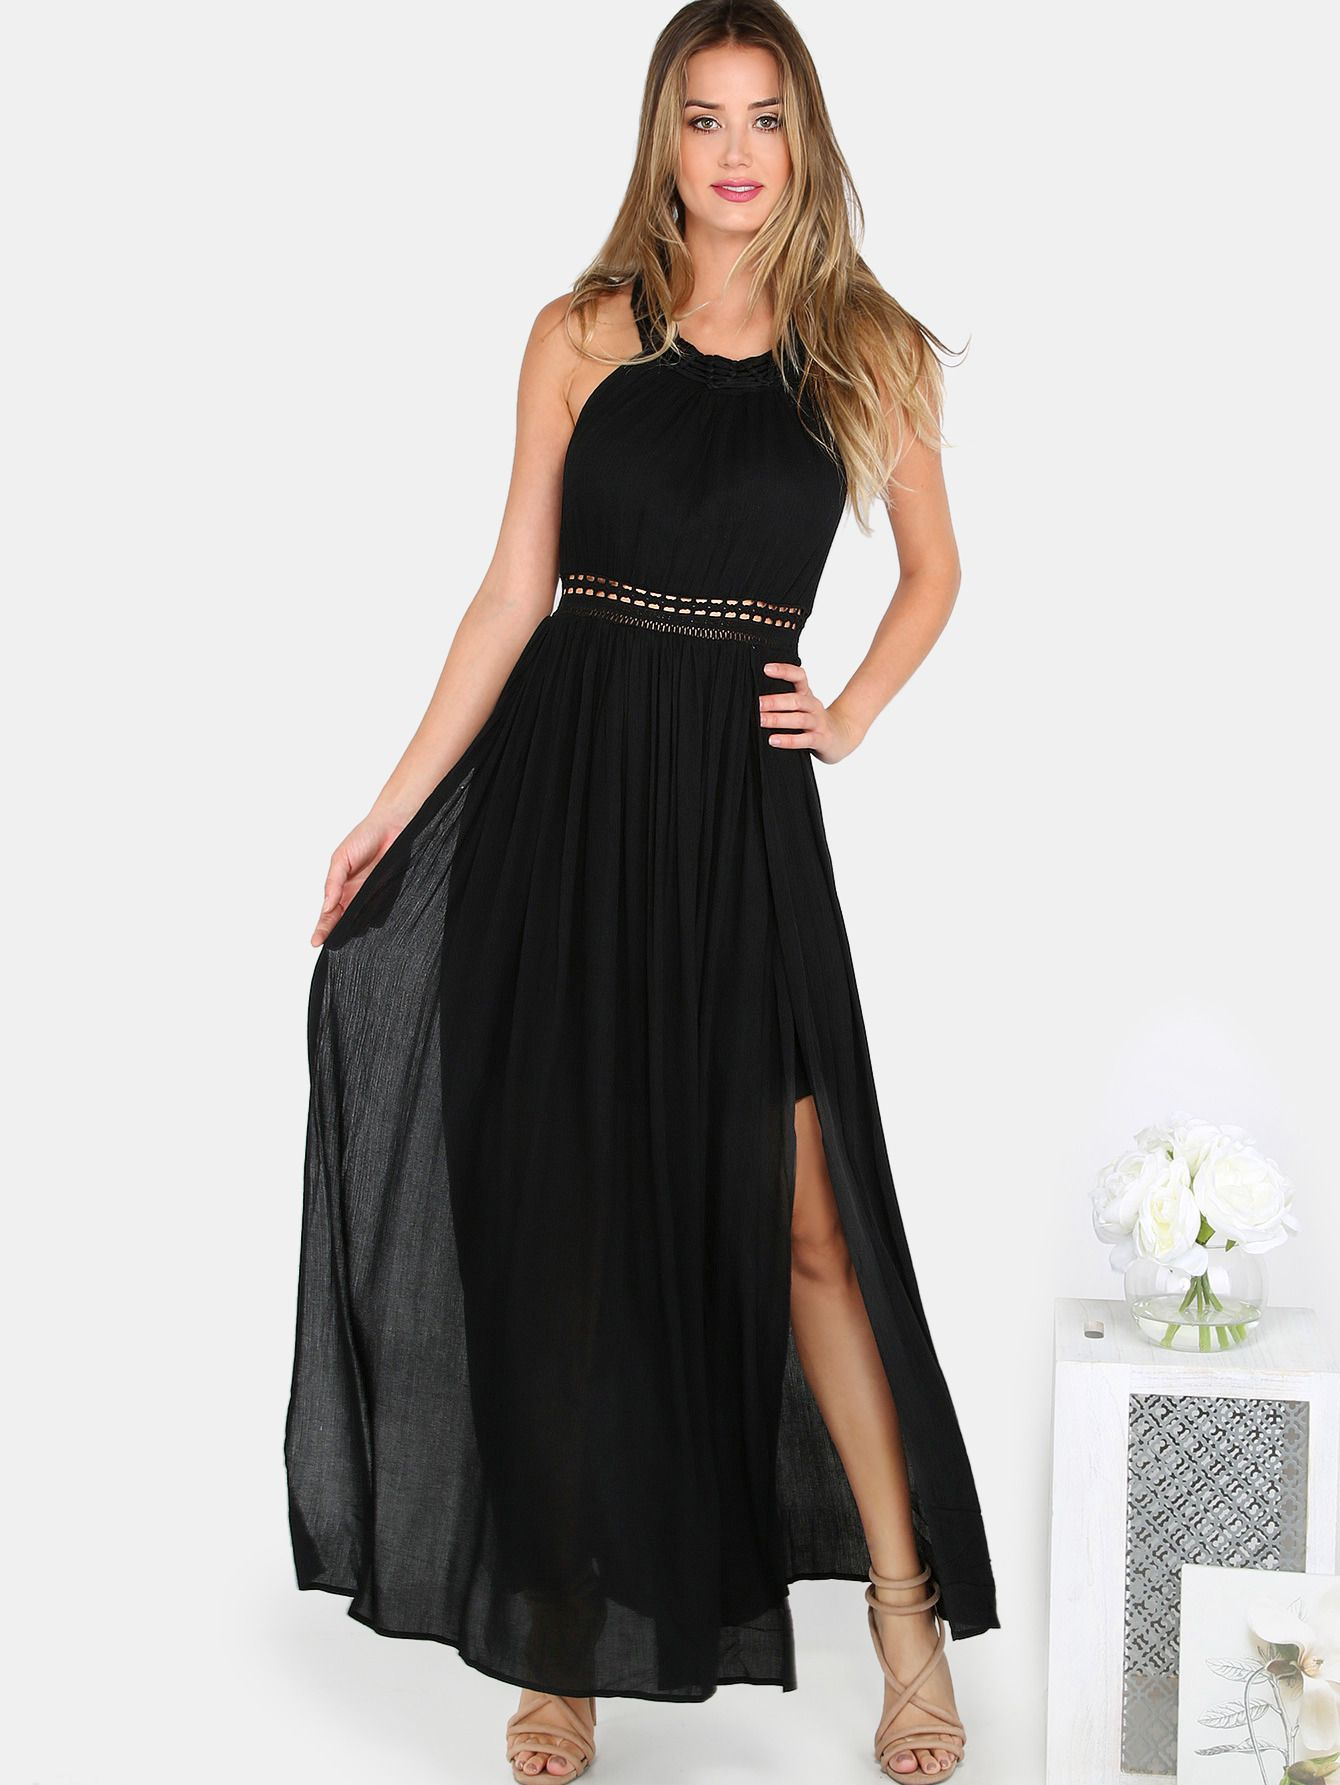 e2b5001cacd3 Find yourself lost in love once you put on the Knotted Crochet Maxi Dress.  Features knot design straps with hook and eye closure at top